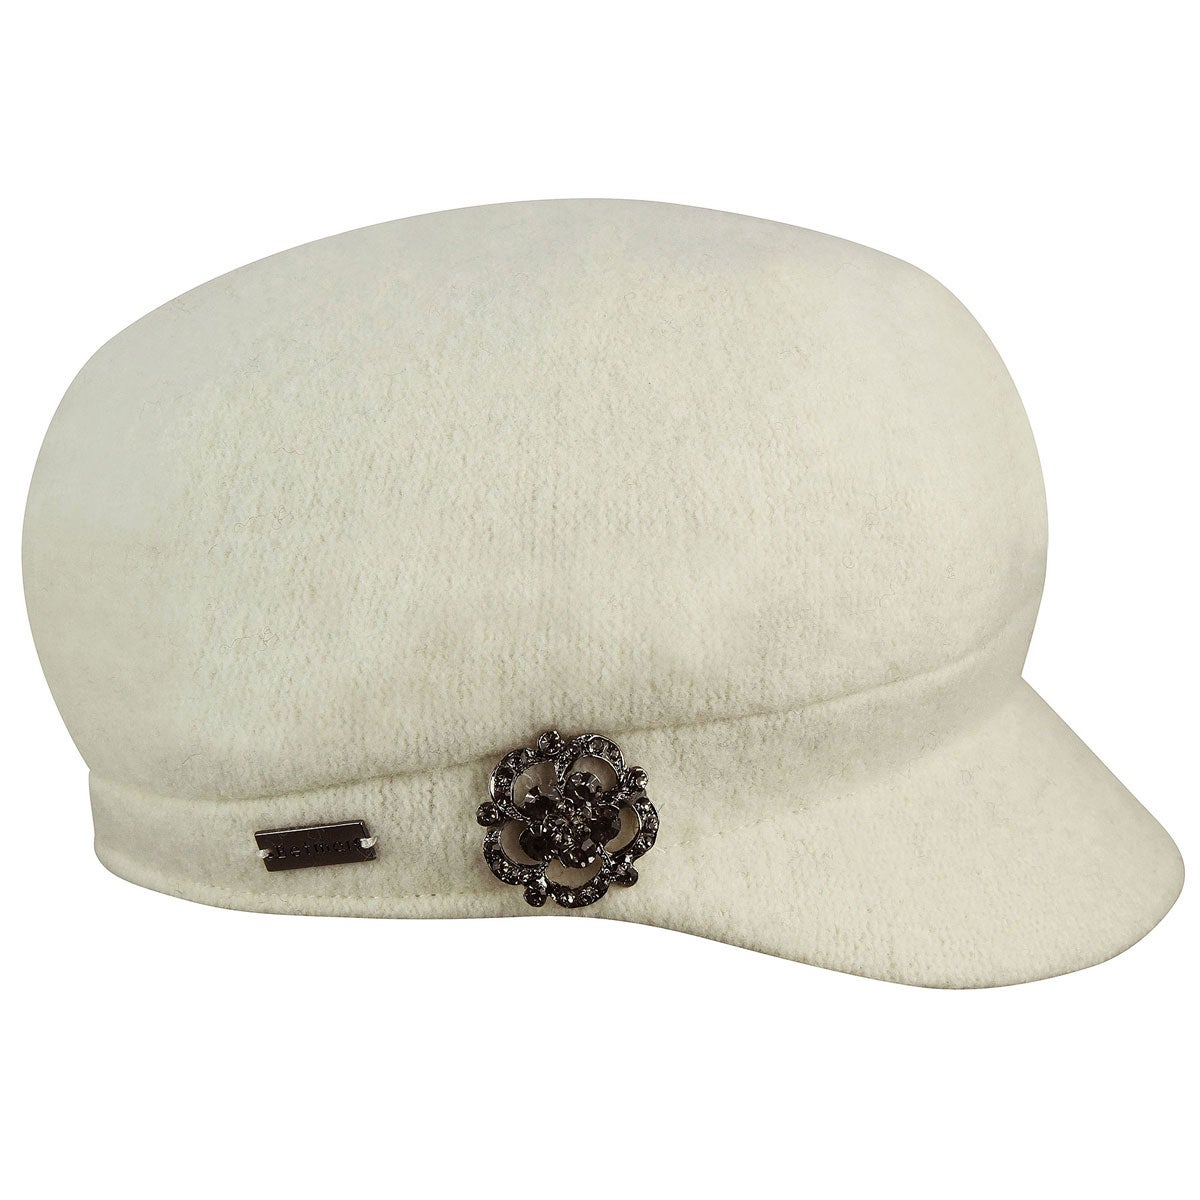 Betmar Crystal Fashion Cap in Winter White